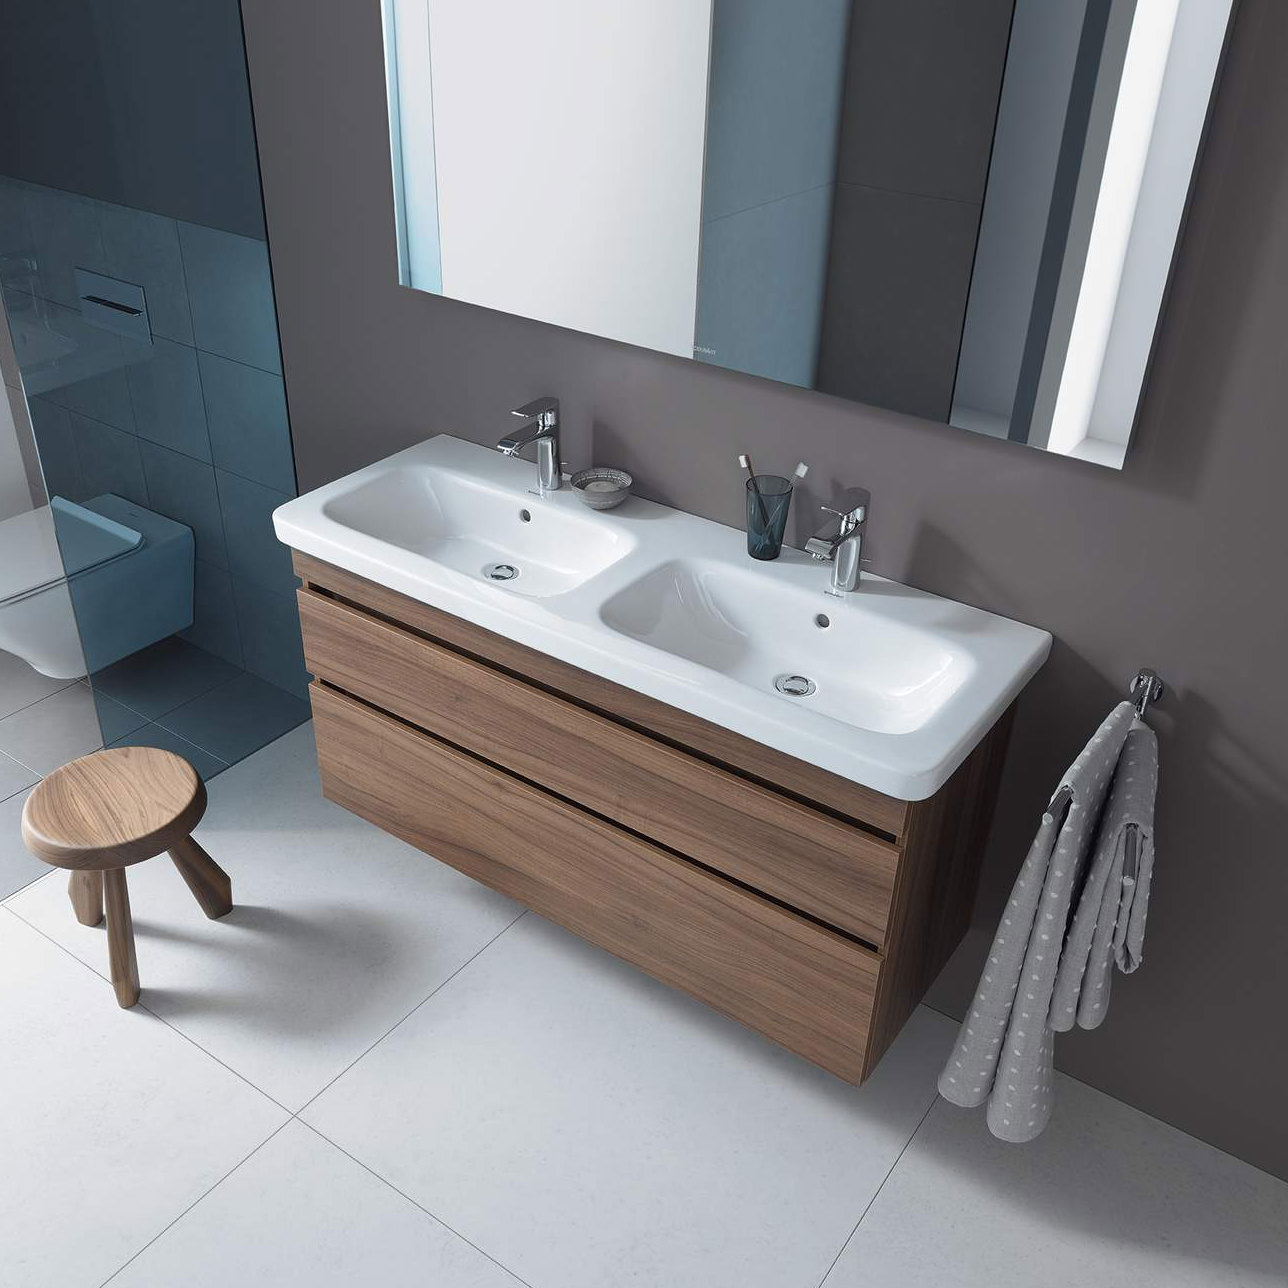 Duravit Durastyle 1300 X 480mm Double Furniture Washbasin 2338130000